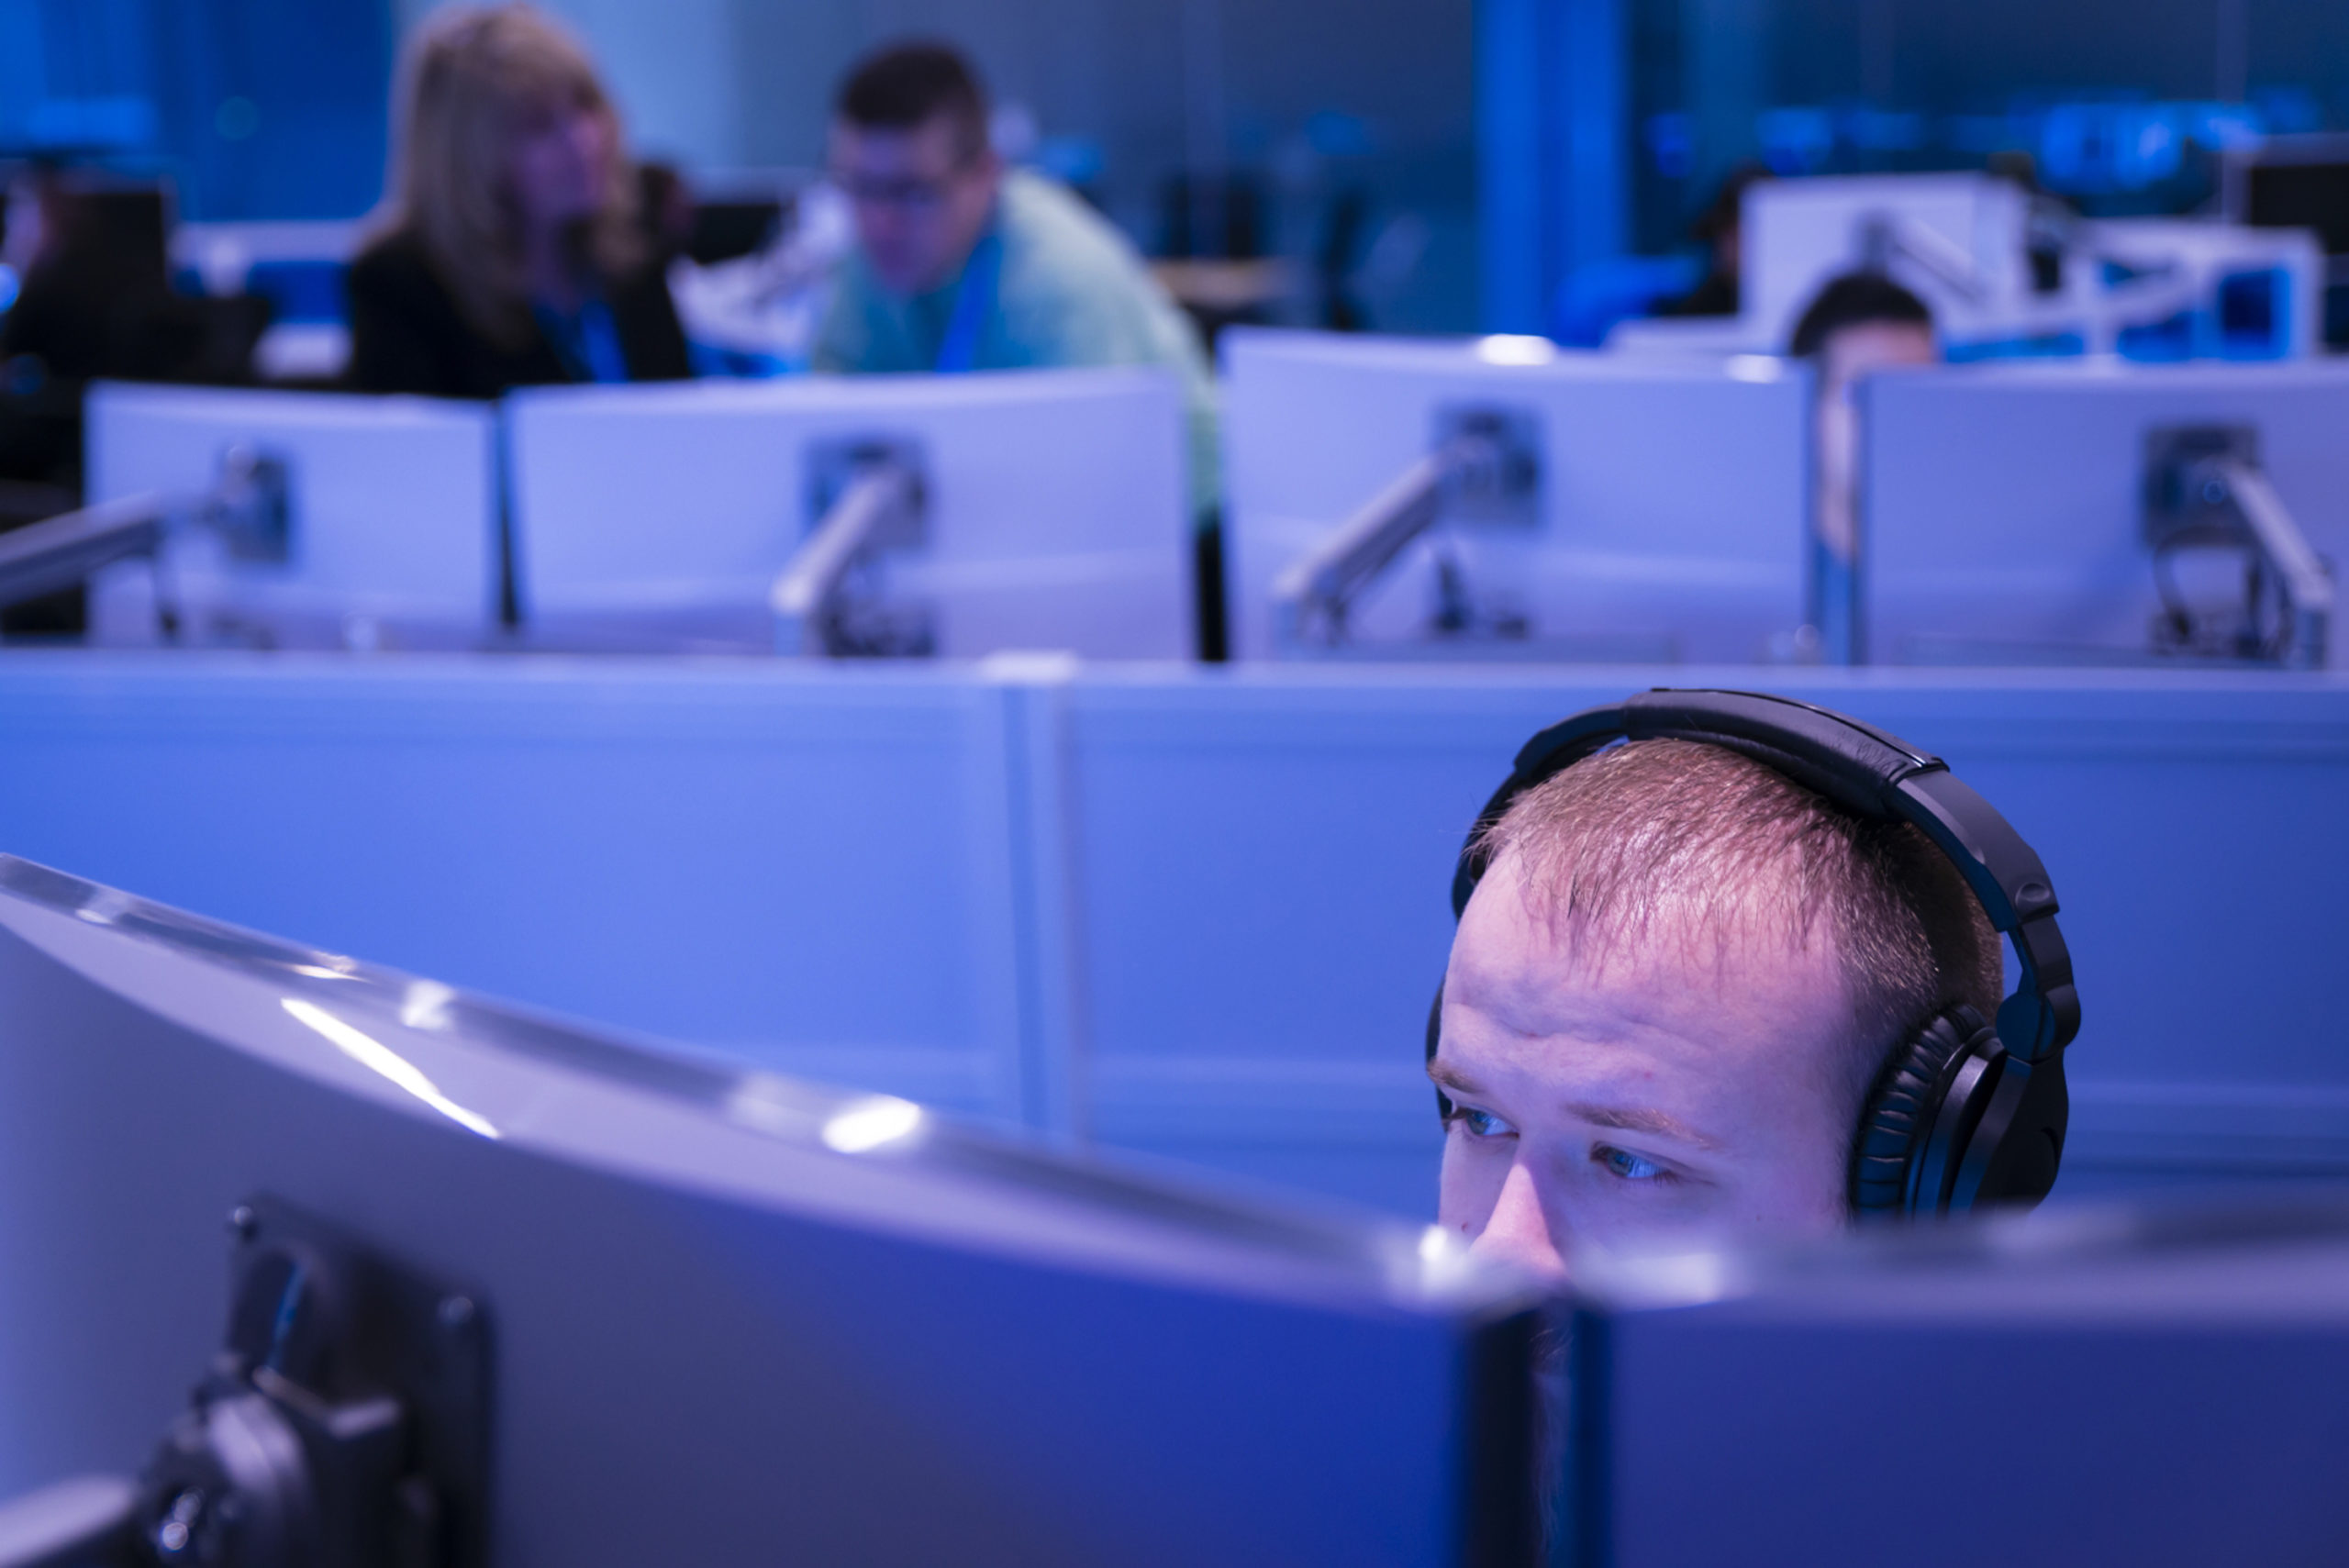 Man working while wearing headphones in the Microsoft Cyber Defense Operations Center